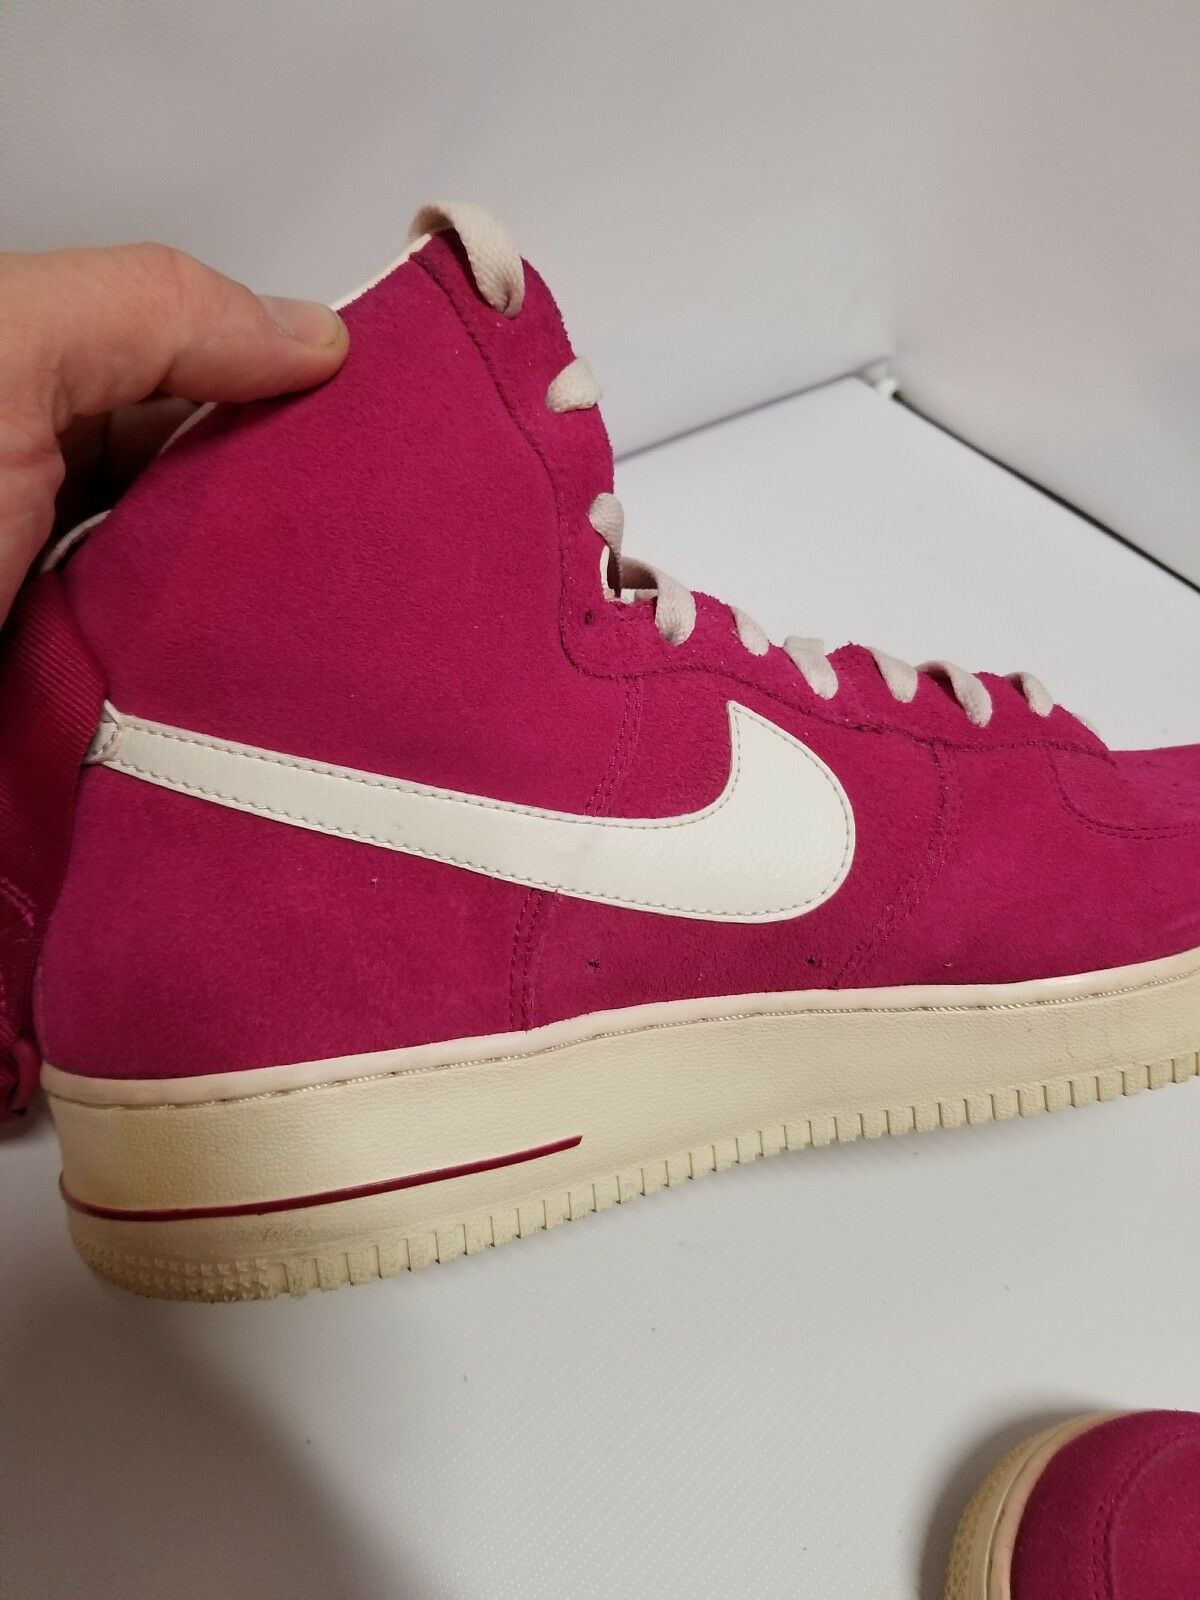 Rare Nike Air Force 1 High 07 Blazer 315121-602 Fuchsia Pink Size 10.5 suede